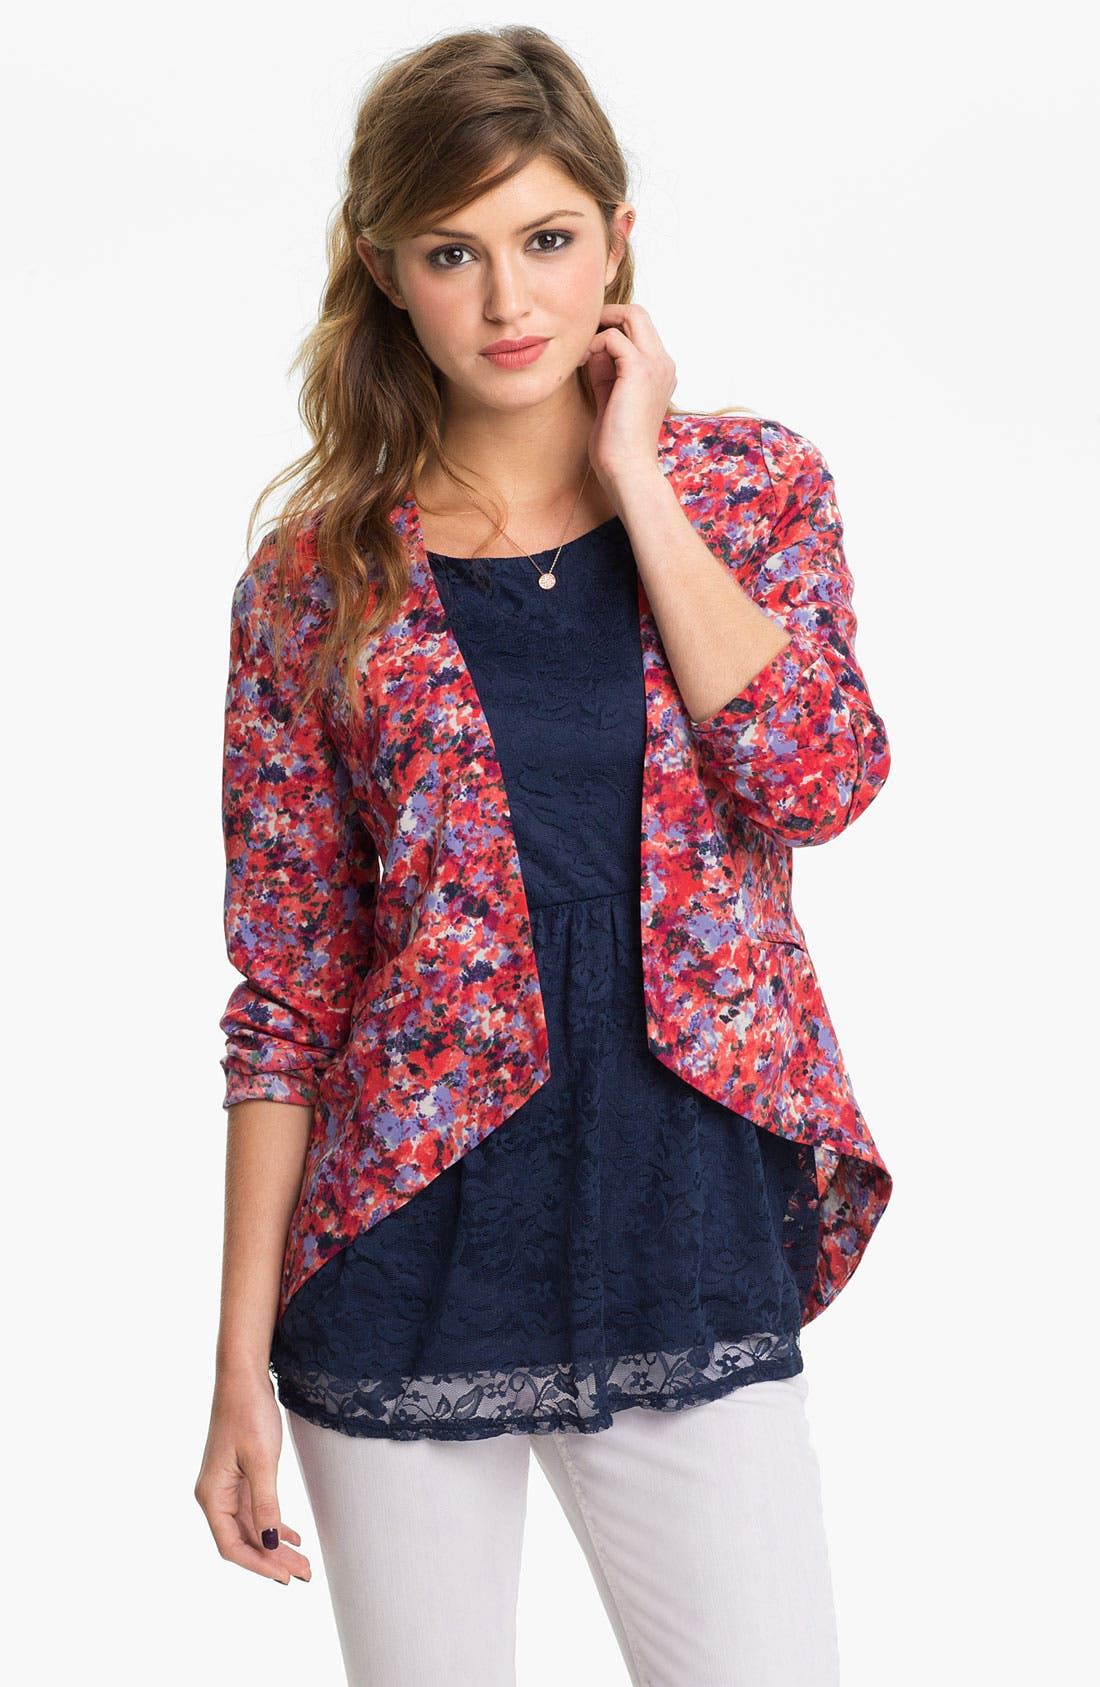 Alternate Image 1 Selected - Lush Print Drape Blazer (Juniors)